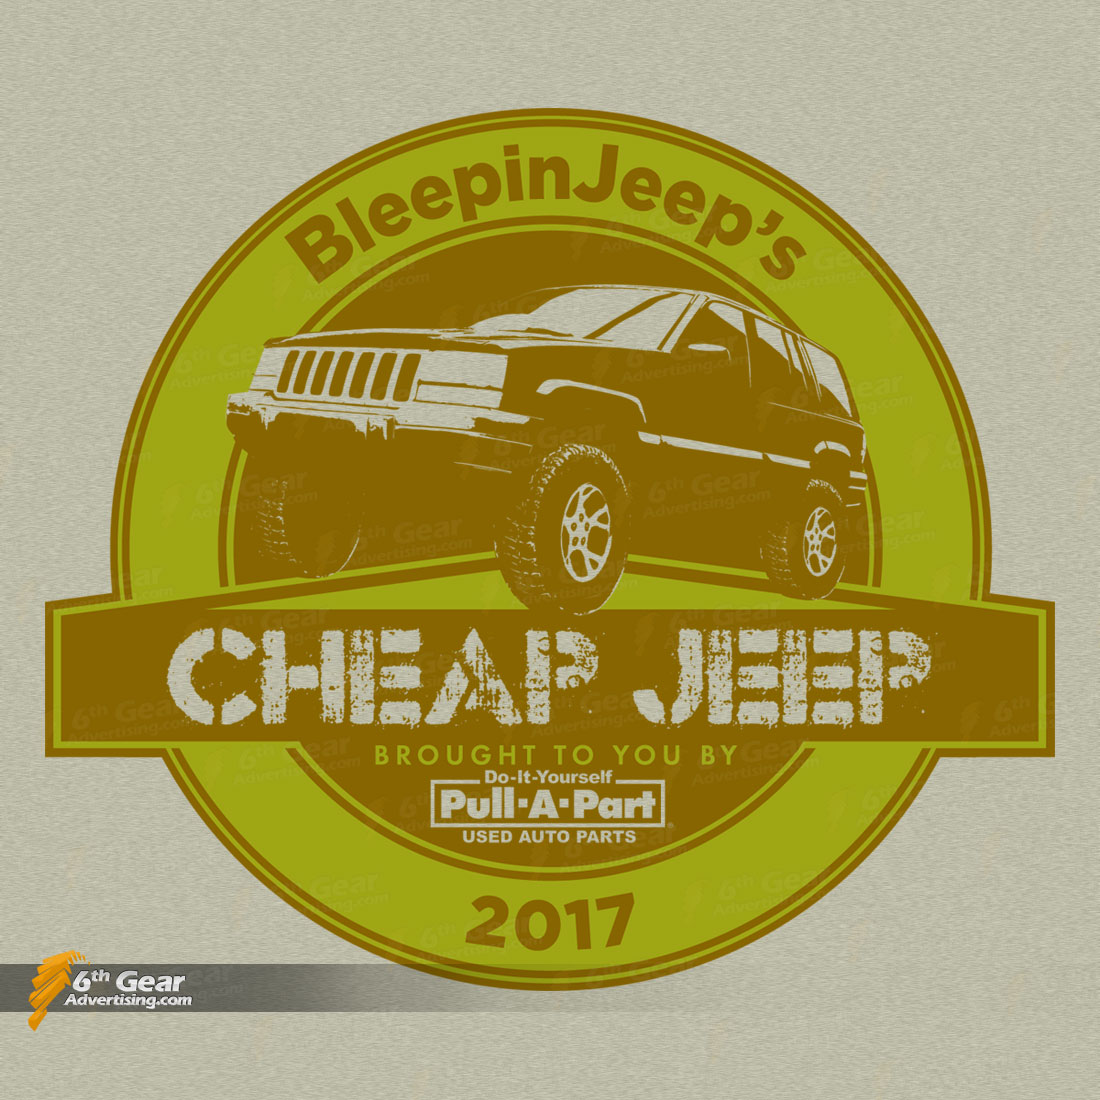 Cheap Jeep 2017